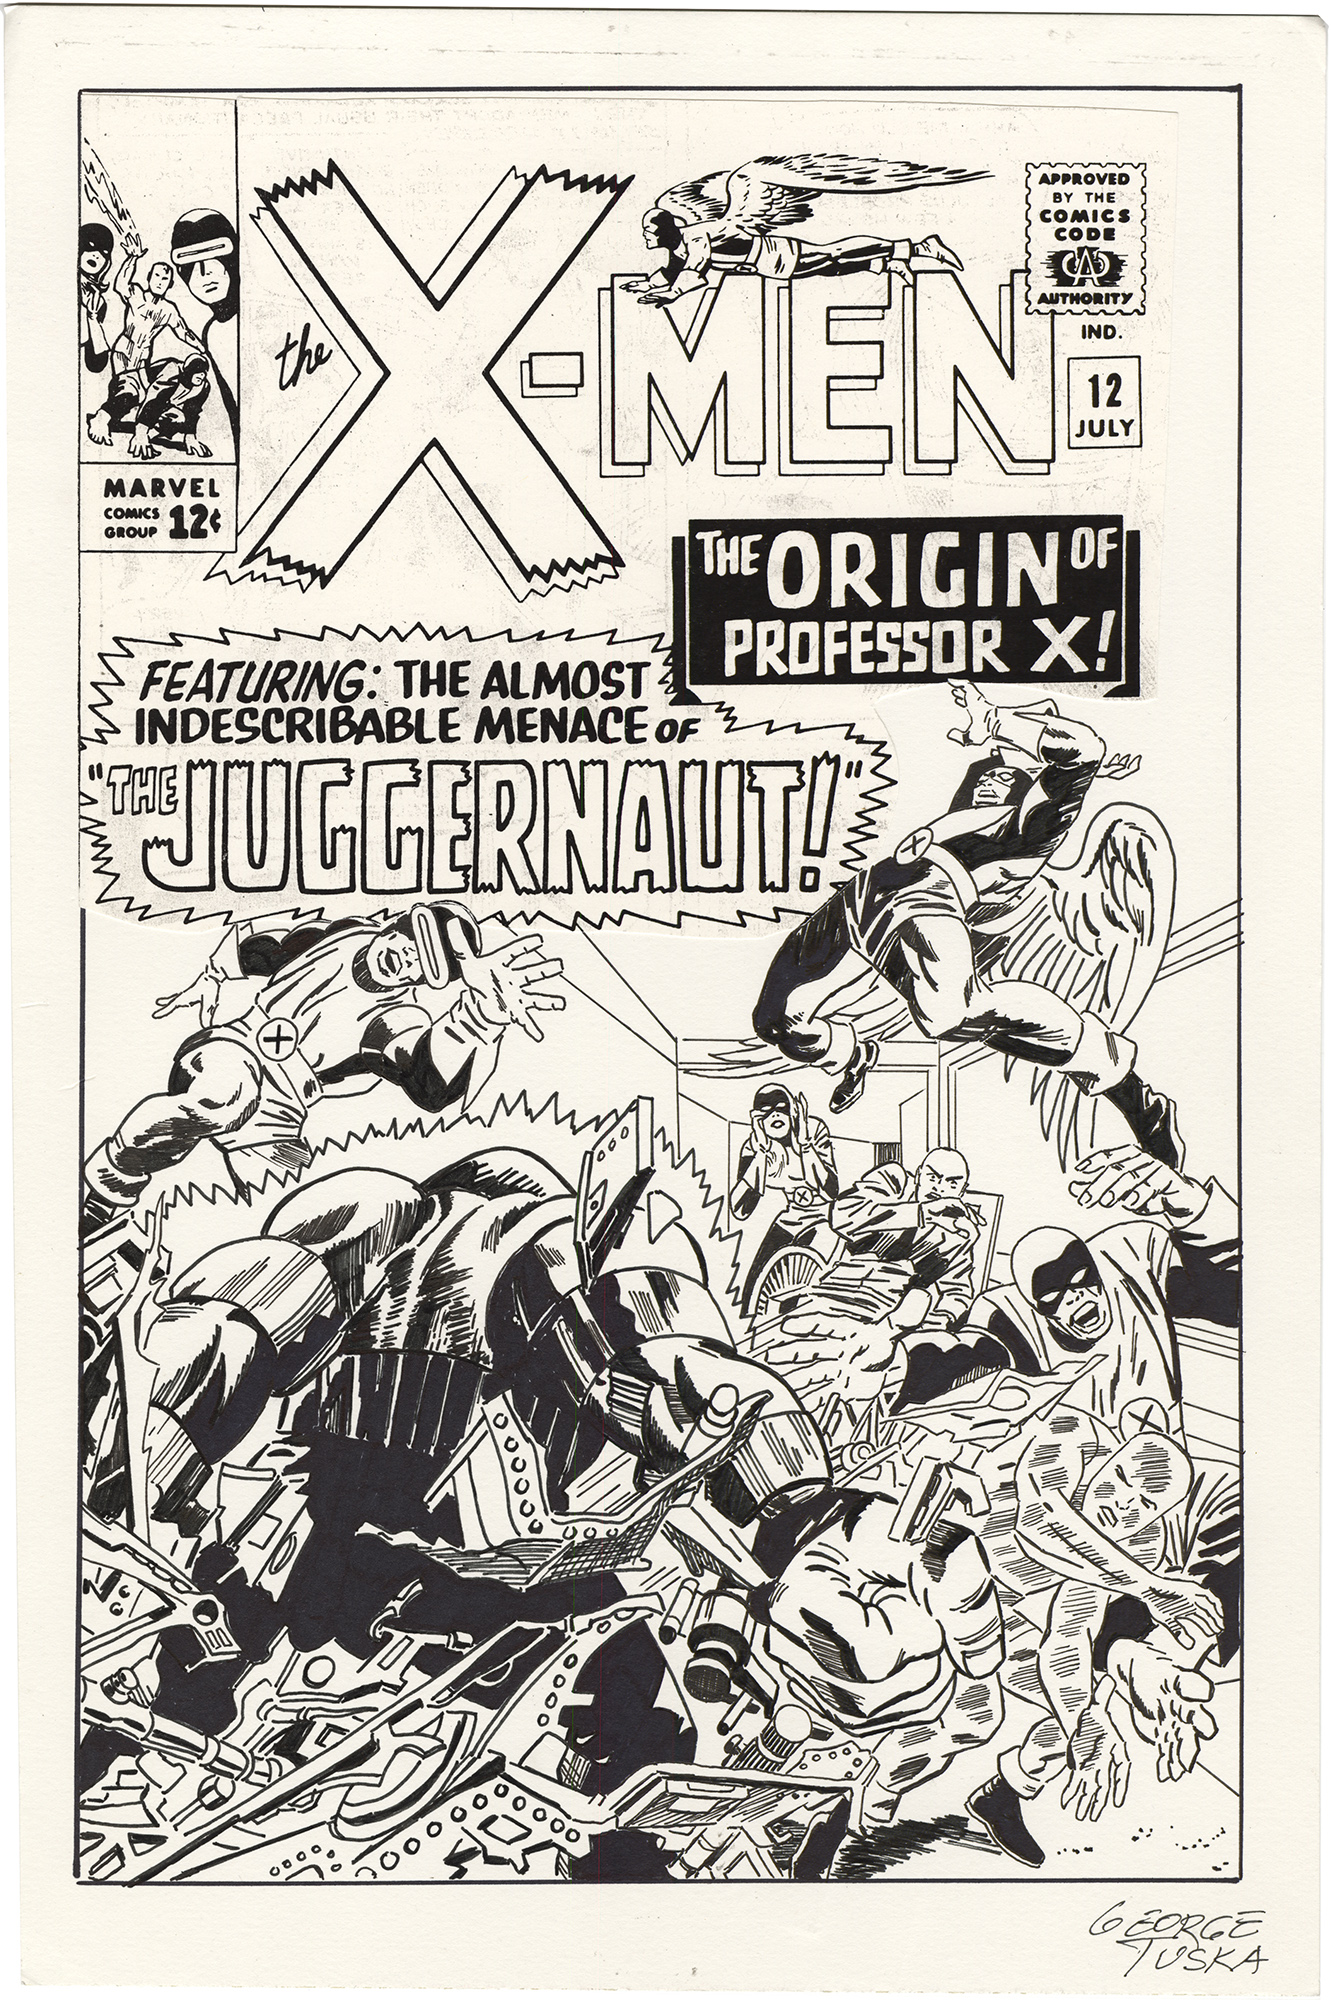 X-Men #12 Cover (Recreation)